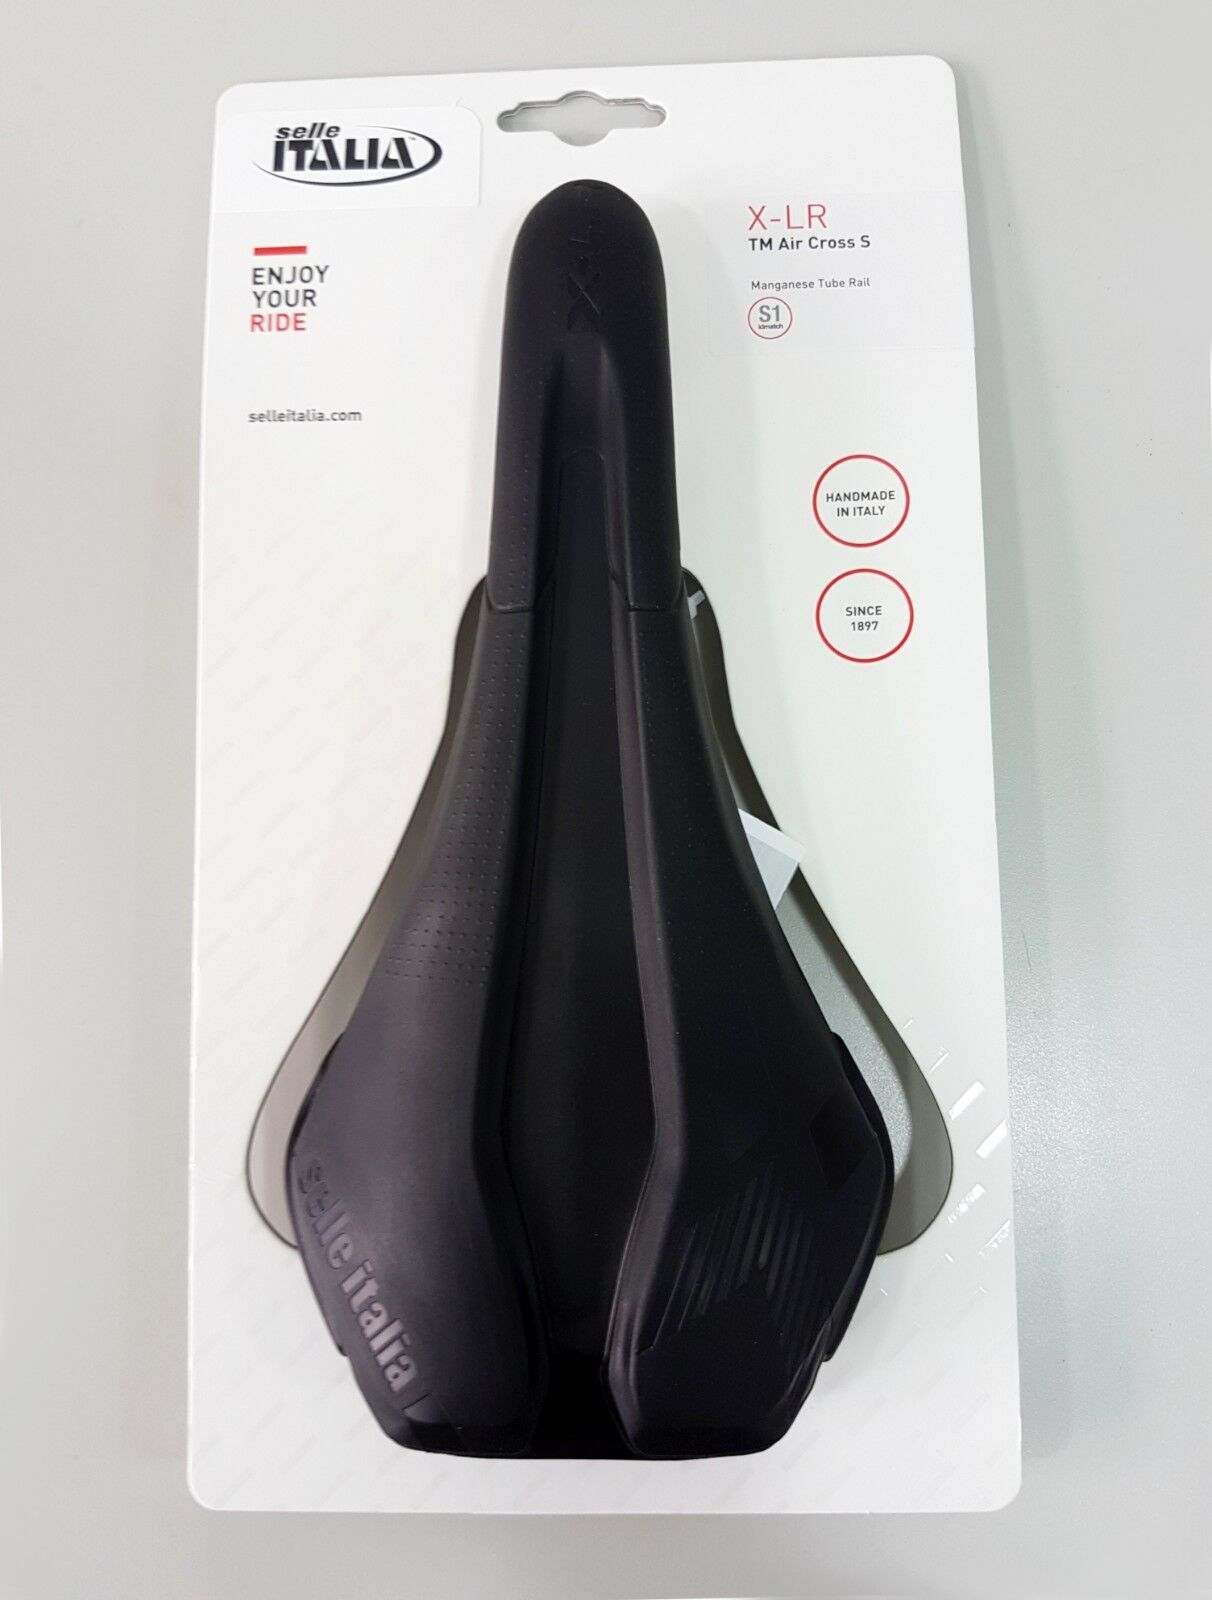 Selle Italia X-LR TM Air Cross S1 131x266 Manganese Tube Ø7mm Rail Saddle